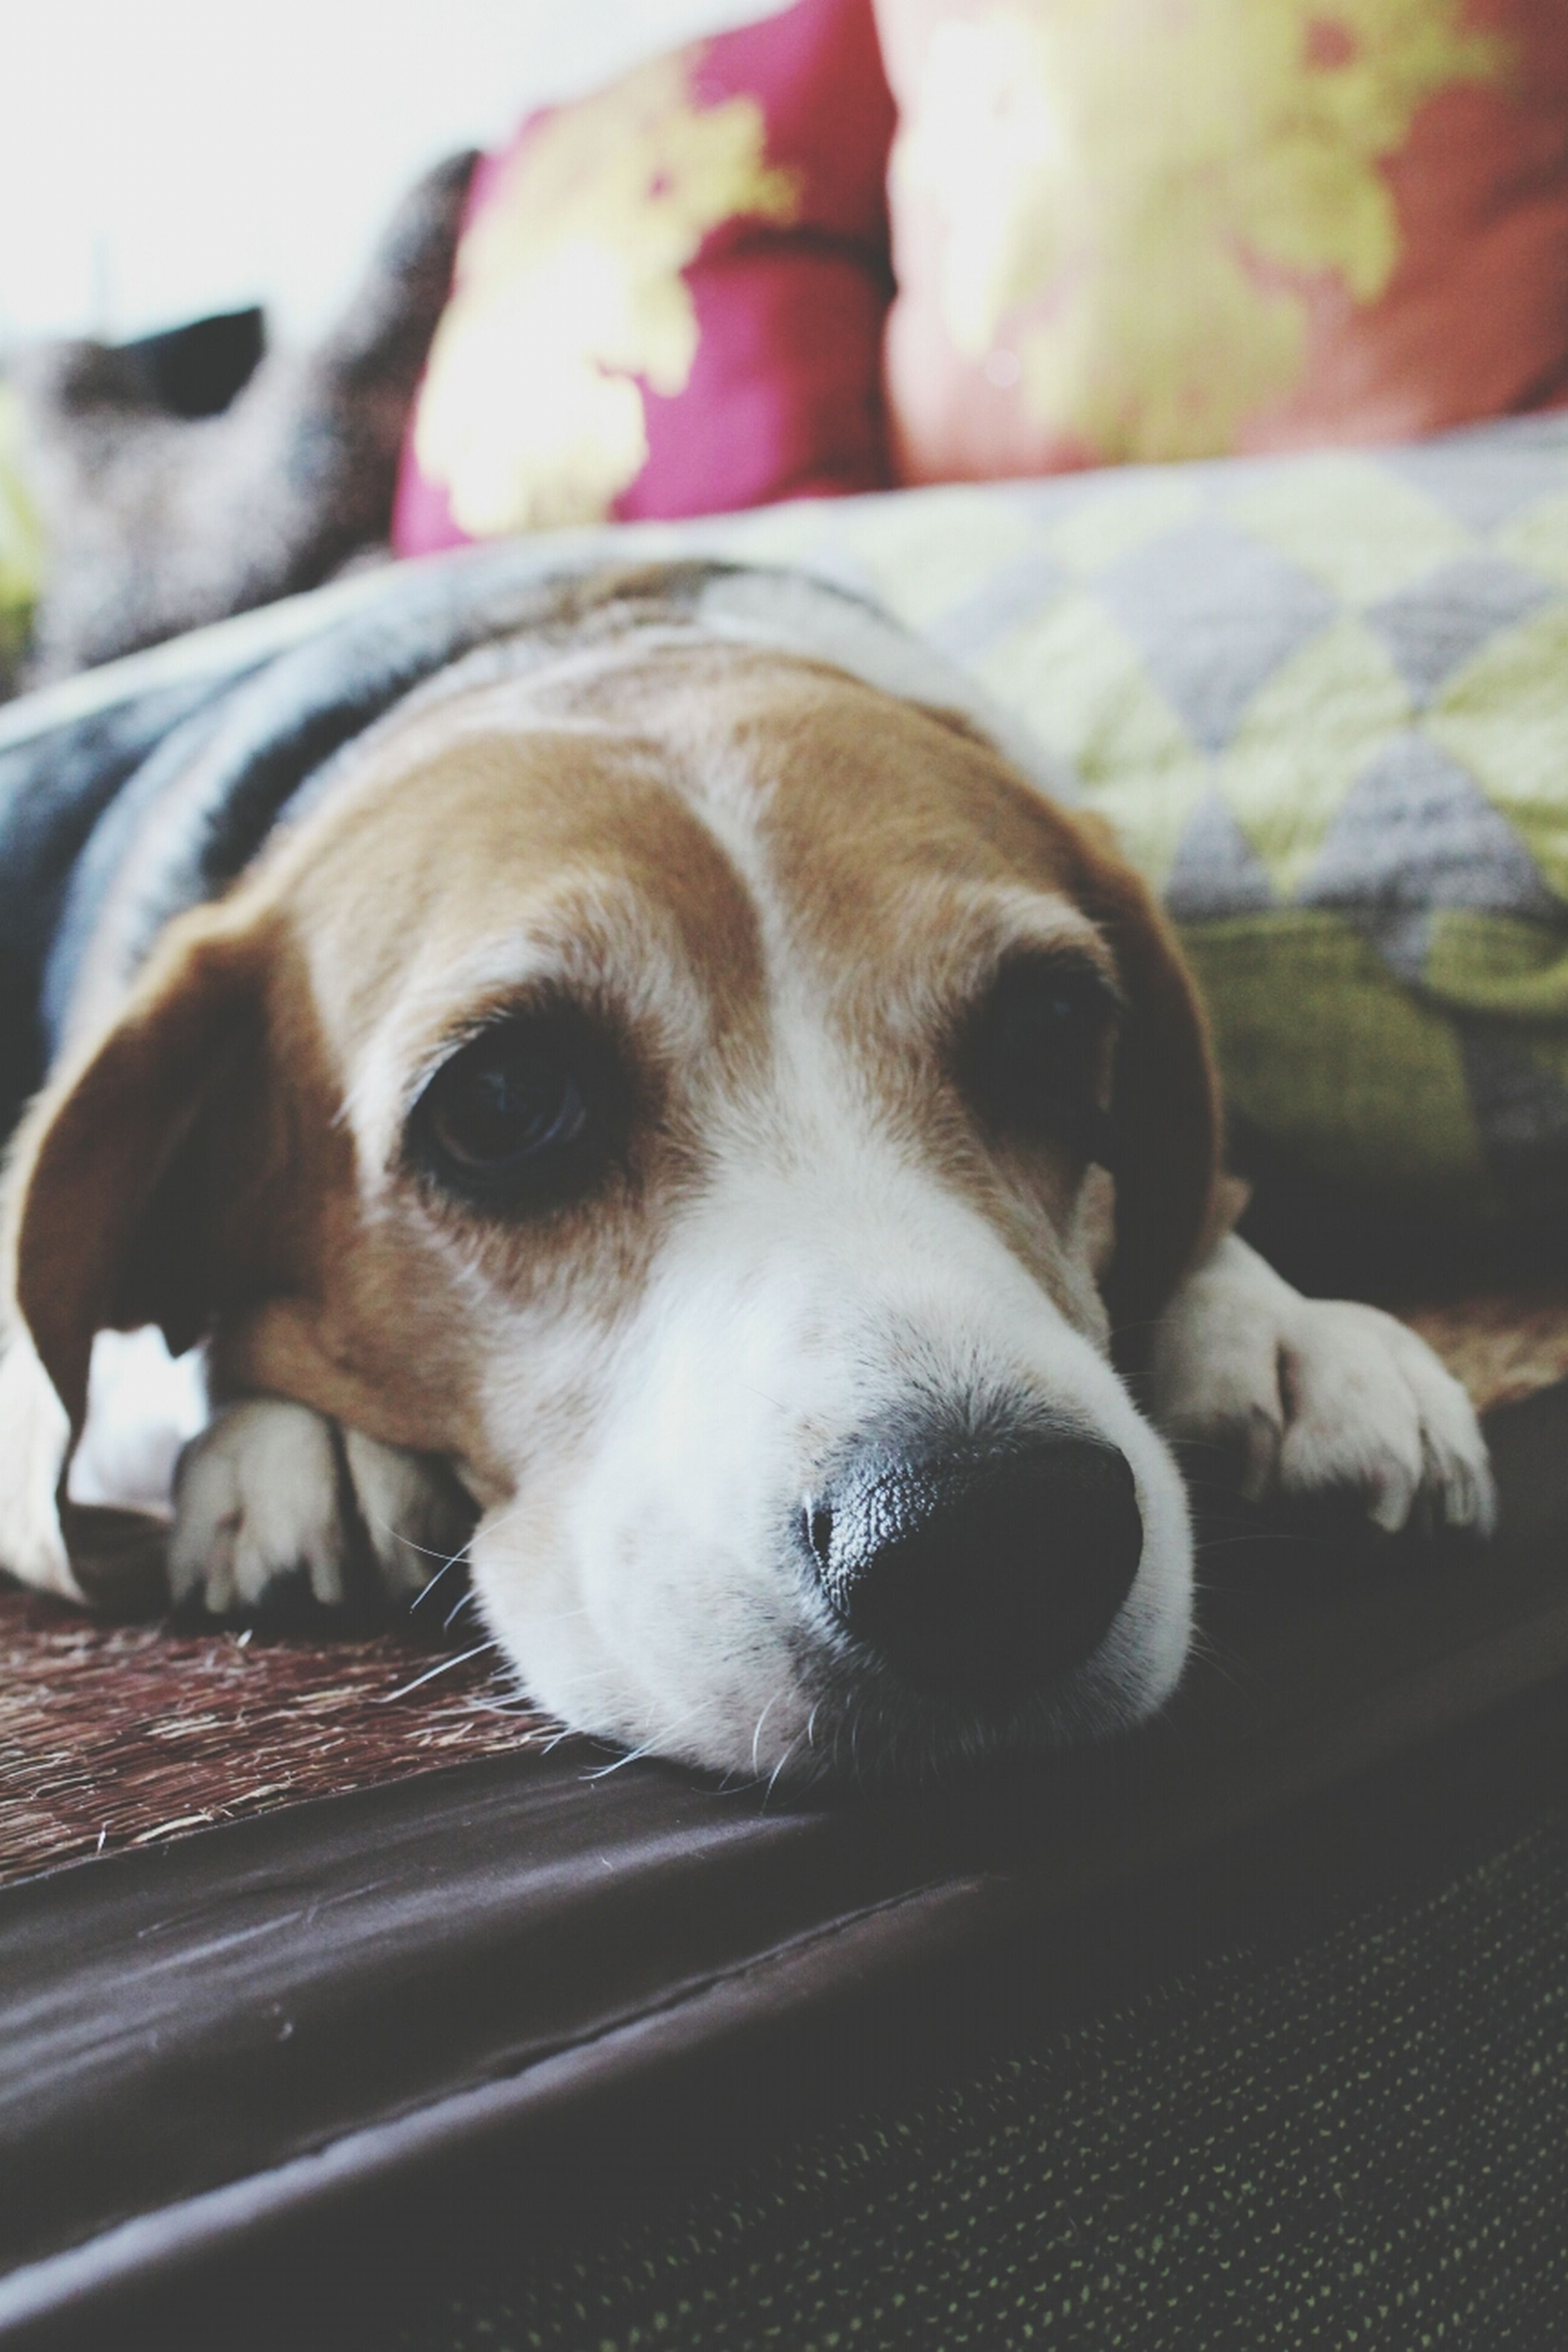 pets, domestic animals, dog, indoors, animal themes, mammal, one animal, relaxation, resting, portrait, sofa, lying down, looking at camera, close-up, animal head, home interior, bed, comfortable, no people, relaxing